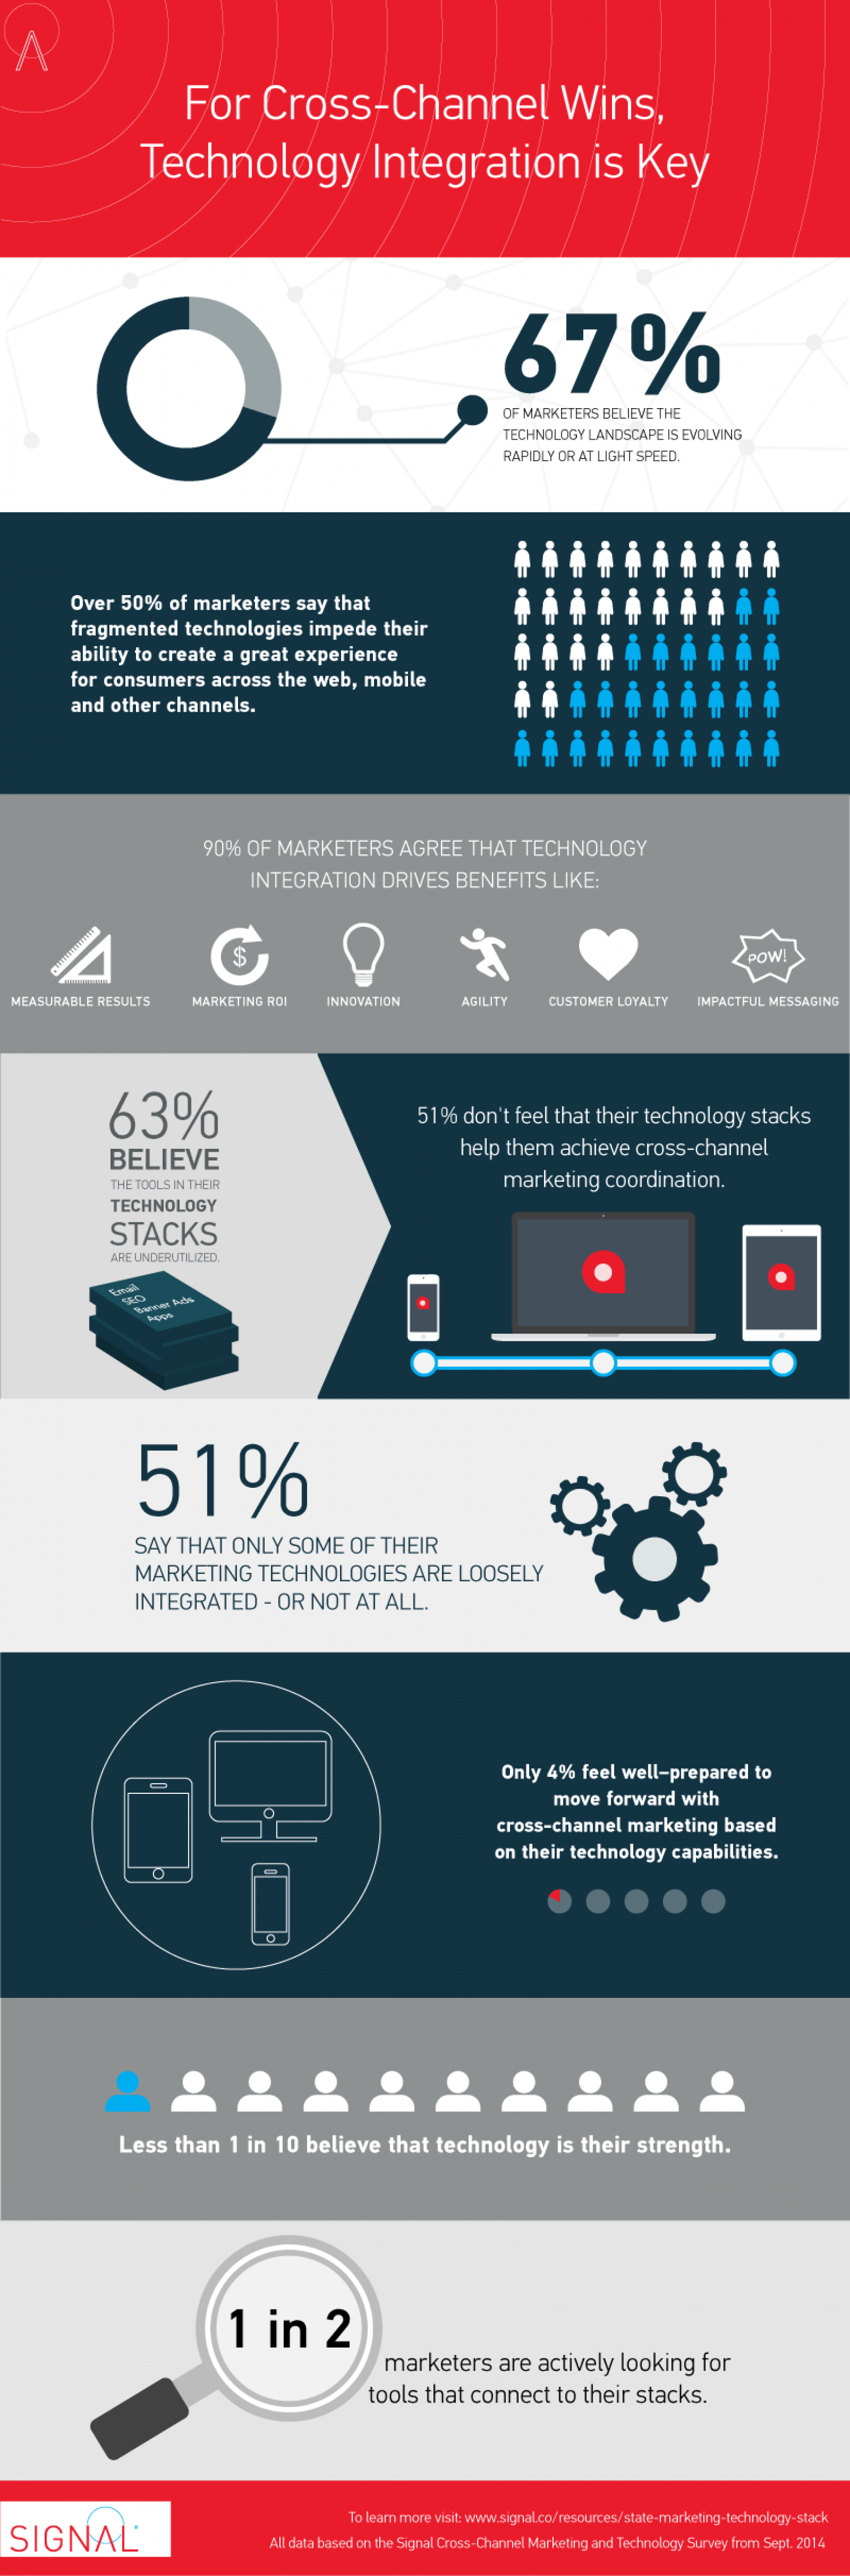 For Cross-Channel Wins, Technology is Key Infographic